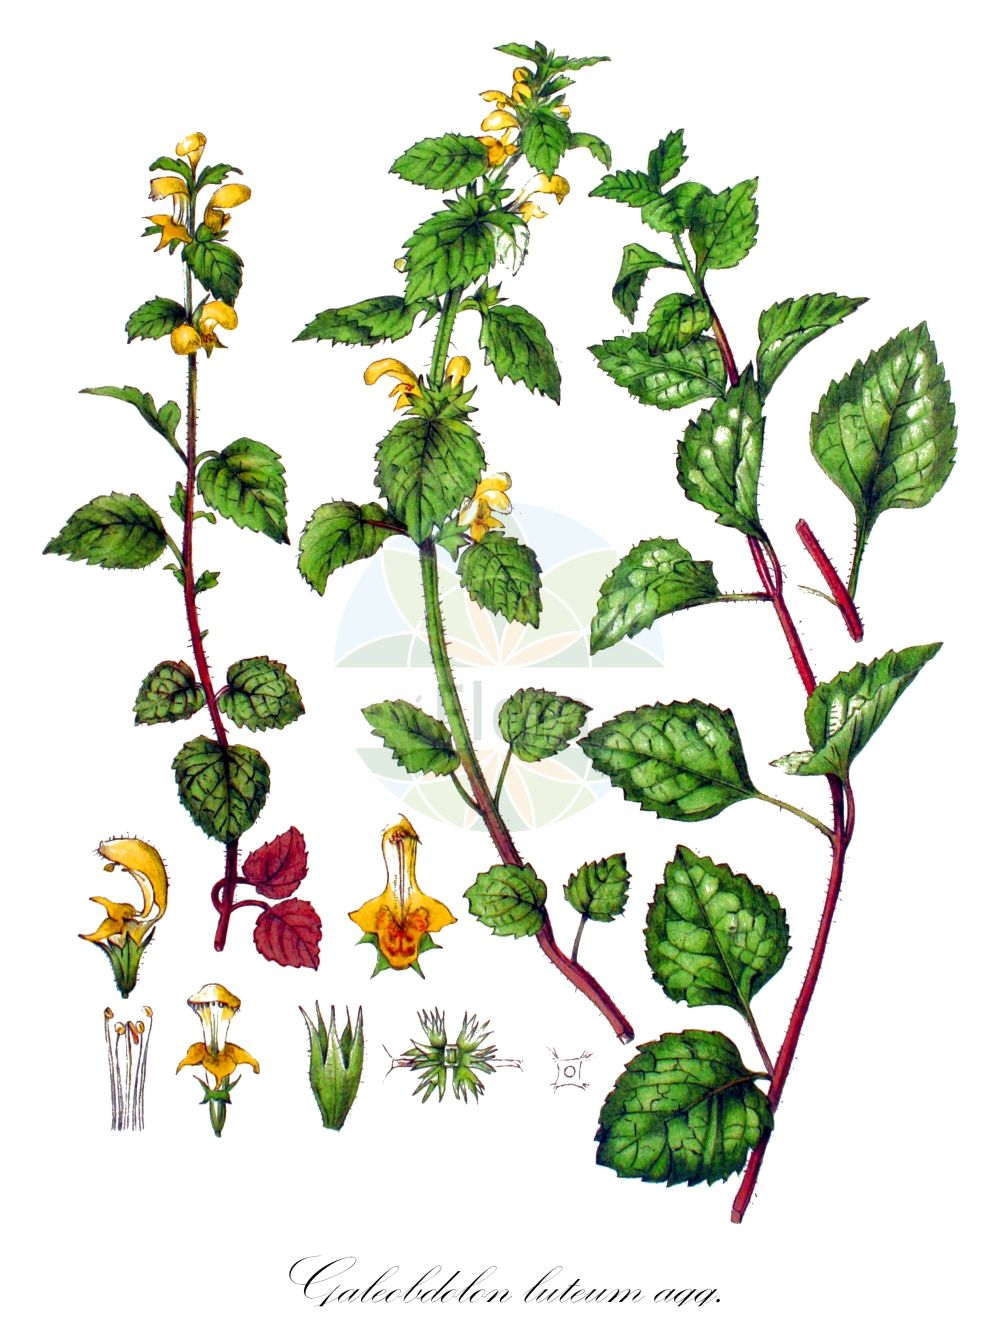 Historische Abbildung von Galeobdolon luteum agg. (Echte Goldnessel - Yellow Archangel). Das Bild zeigt Blatt, Bluete, Frucht und Same. ---- Historical Drawing of Galeobdolon luteum agg. (Echte Goldnessel - Yellow Archangel).The image is showing leaf, flower, fruit and seed.(Galeobdolon luteum agg.,Echte Goldnessel,Yellow Archangel,Yellow Dead-nettle,Lamium,Taubnessel,Deadnettle,Lamiaceae,Lippenbluetengewaechse;Lippenbluetler,Nettle family,Blatt,Bluete,Frucht,Same,leaf,flower,fruit,seed,Kops (1800-1934))